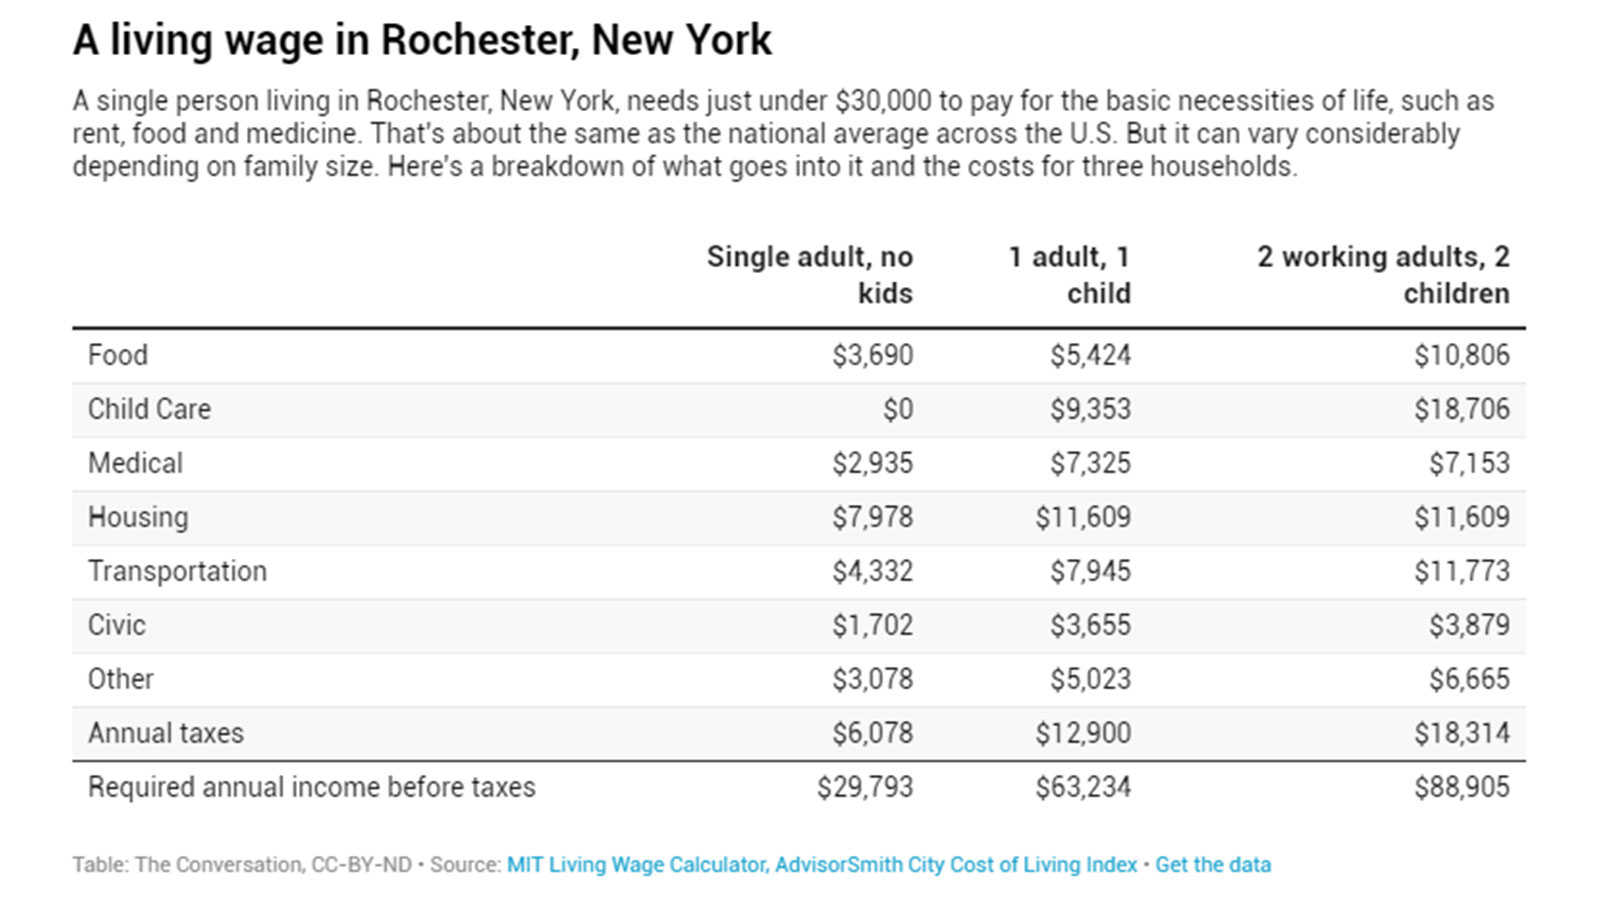 A living wage in Rochester, New York